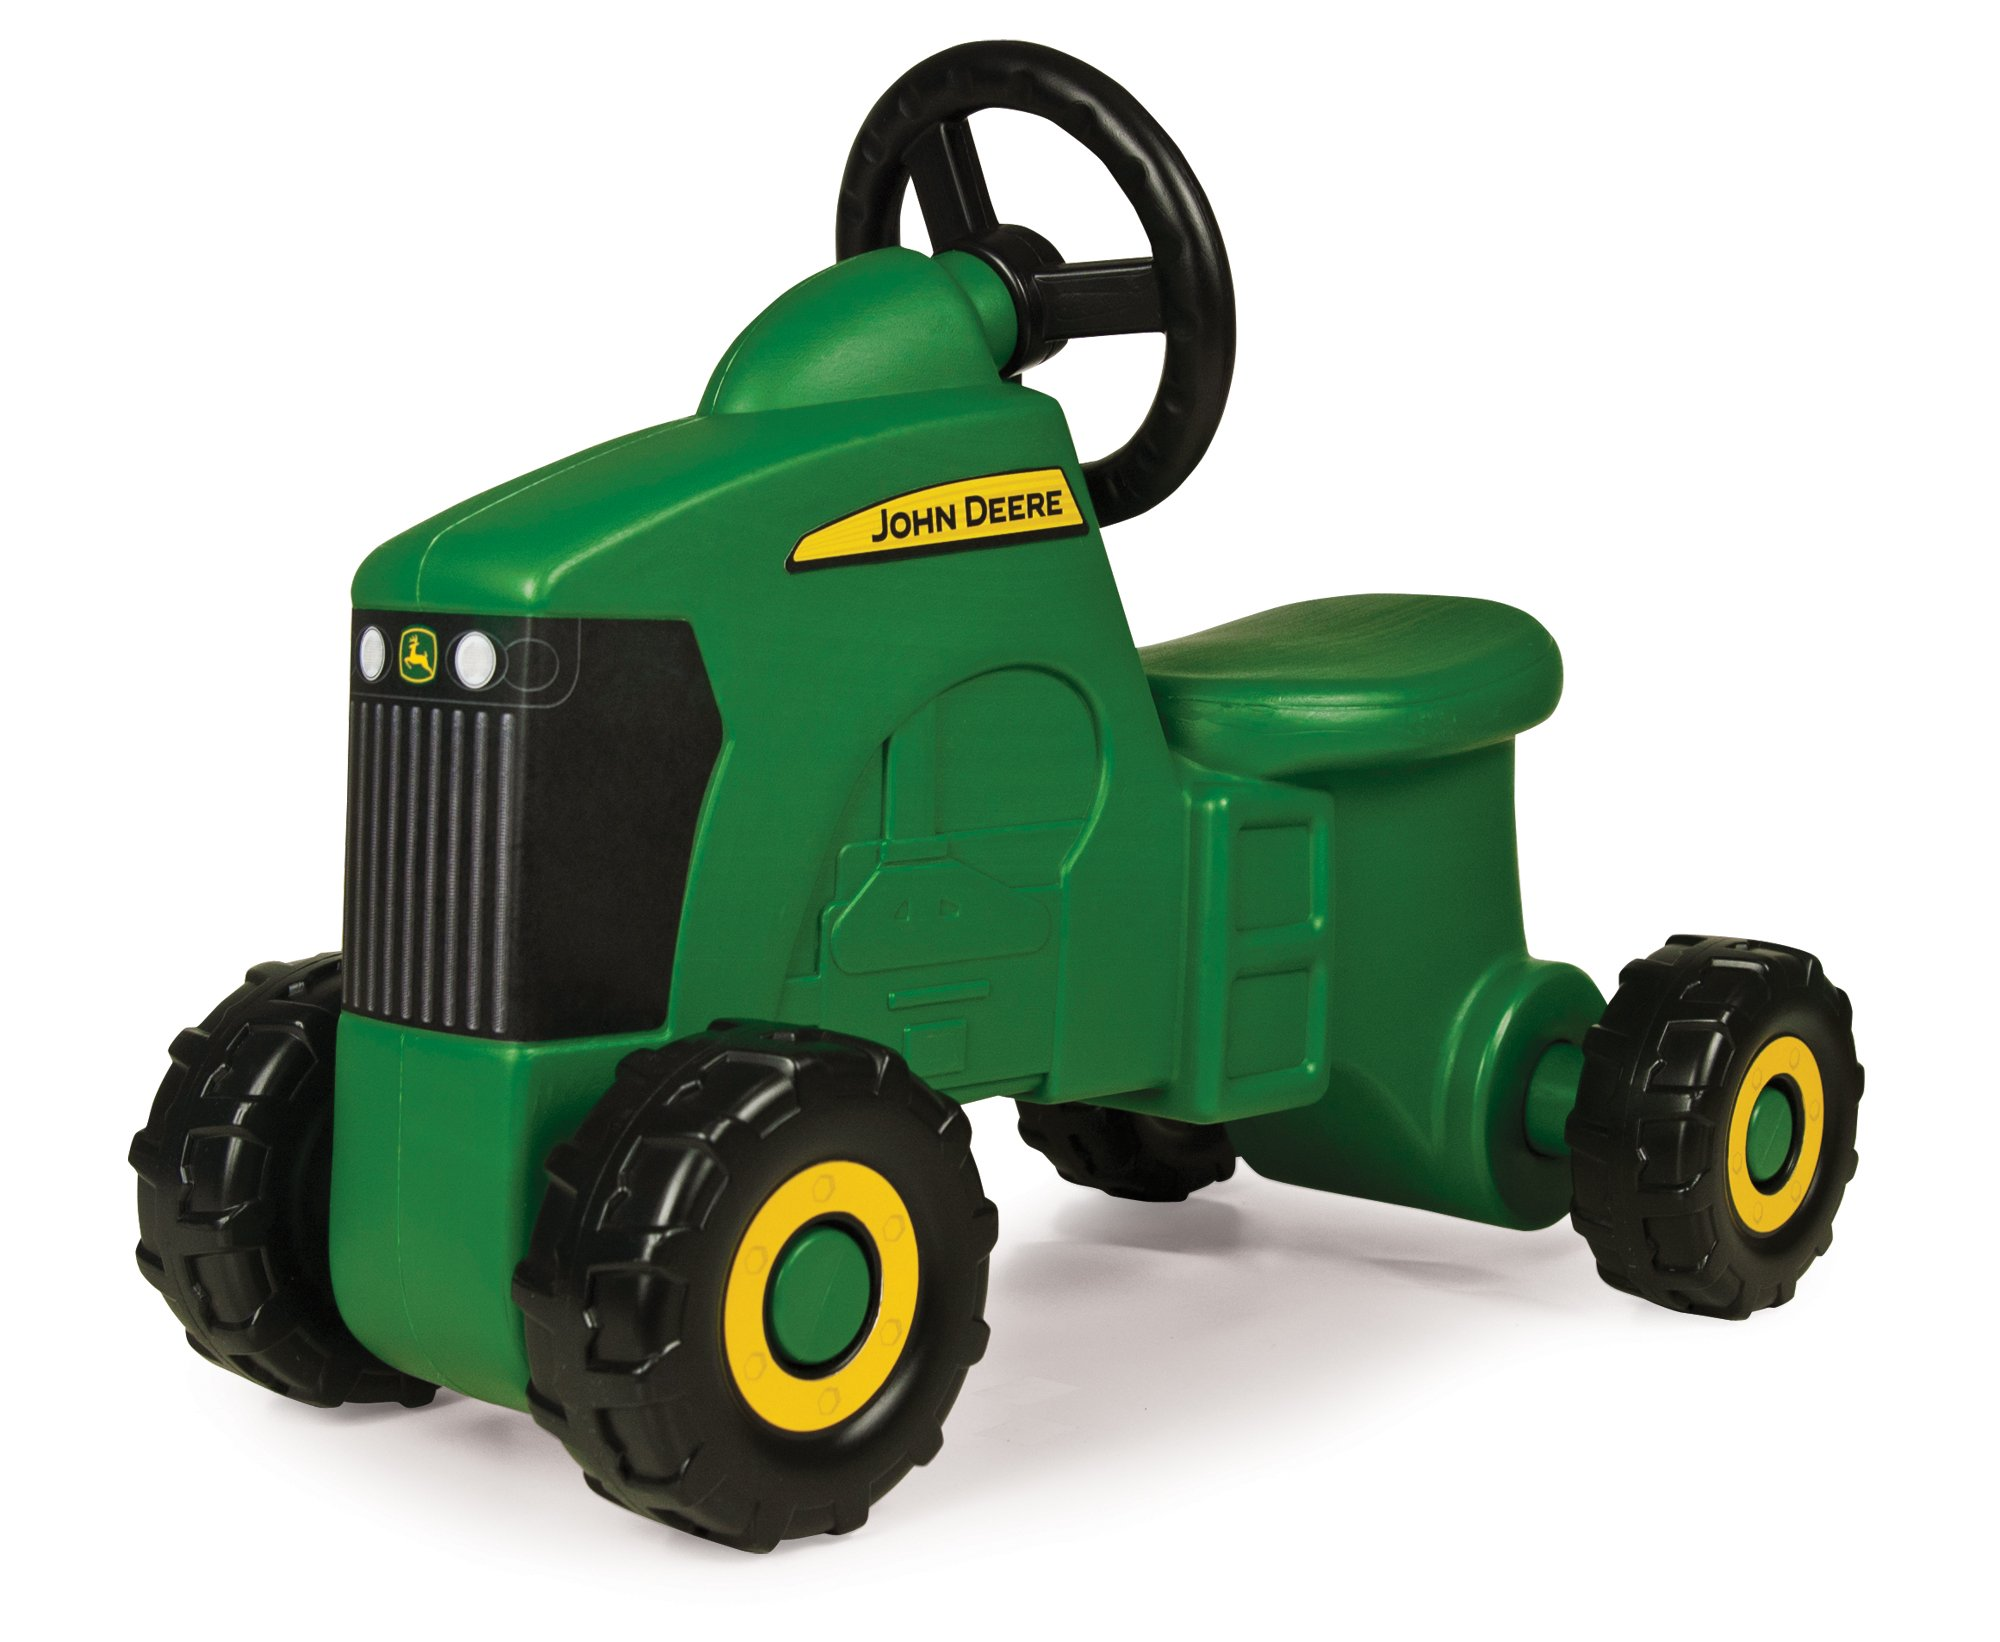 John Deere Sit-N-Scoot Tractor Toy, Green, One Size by TOMY